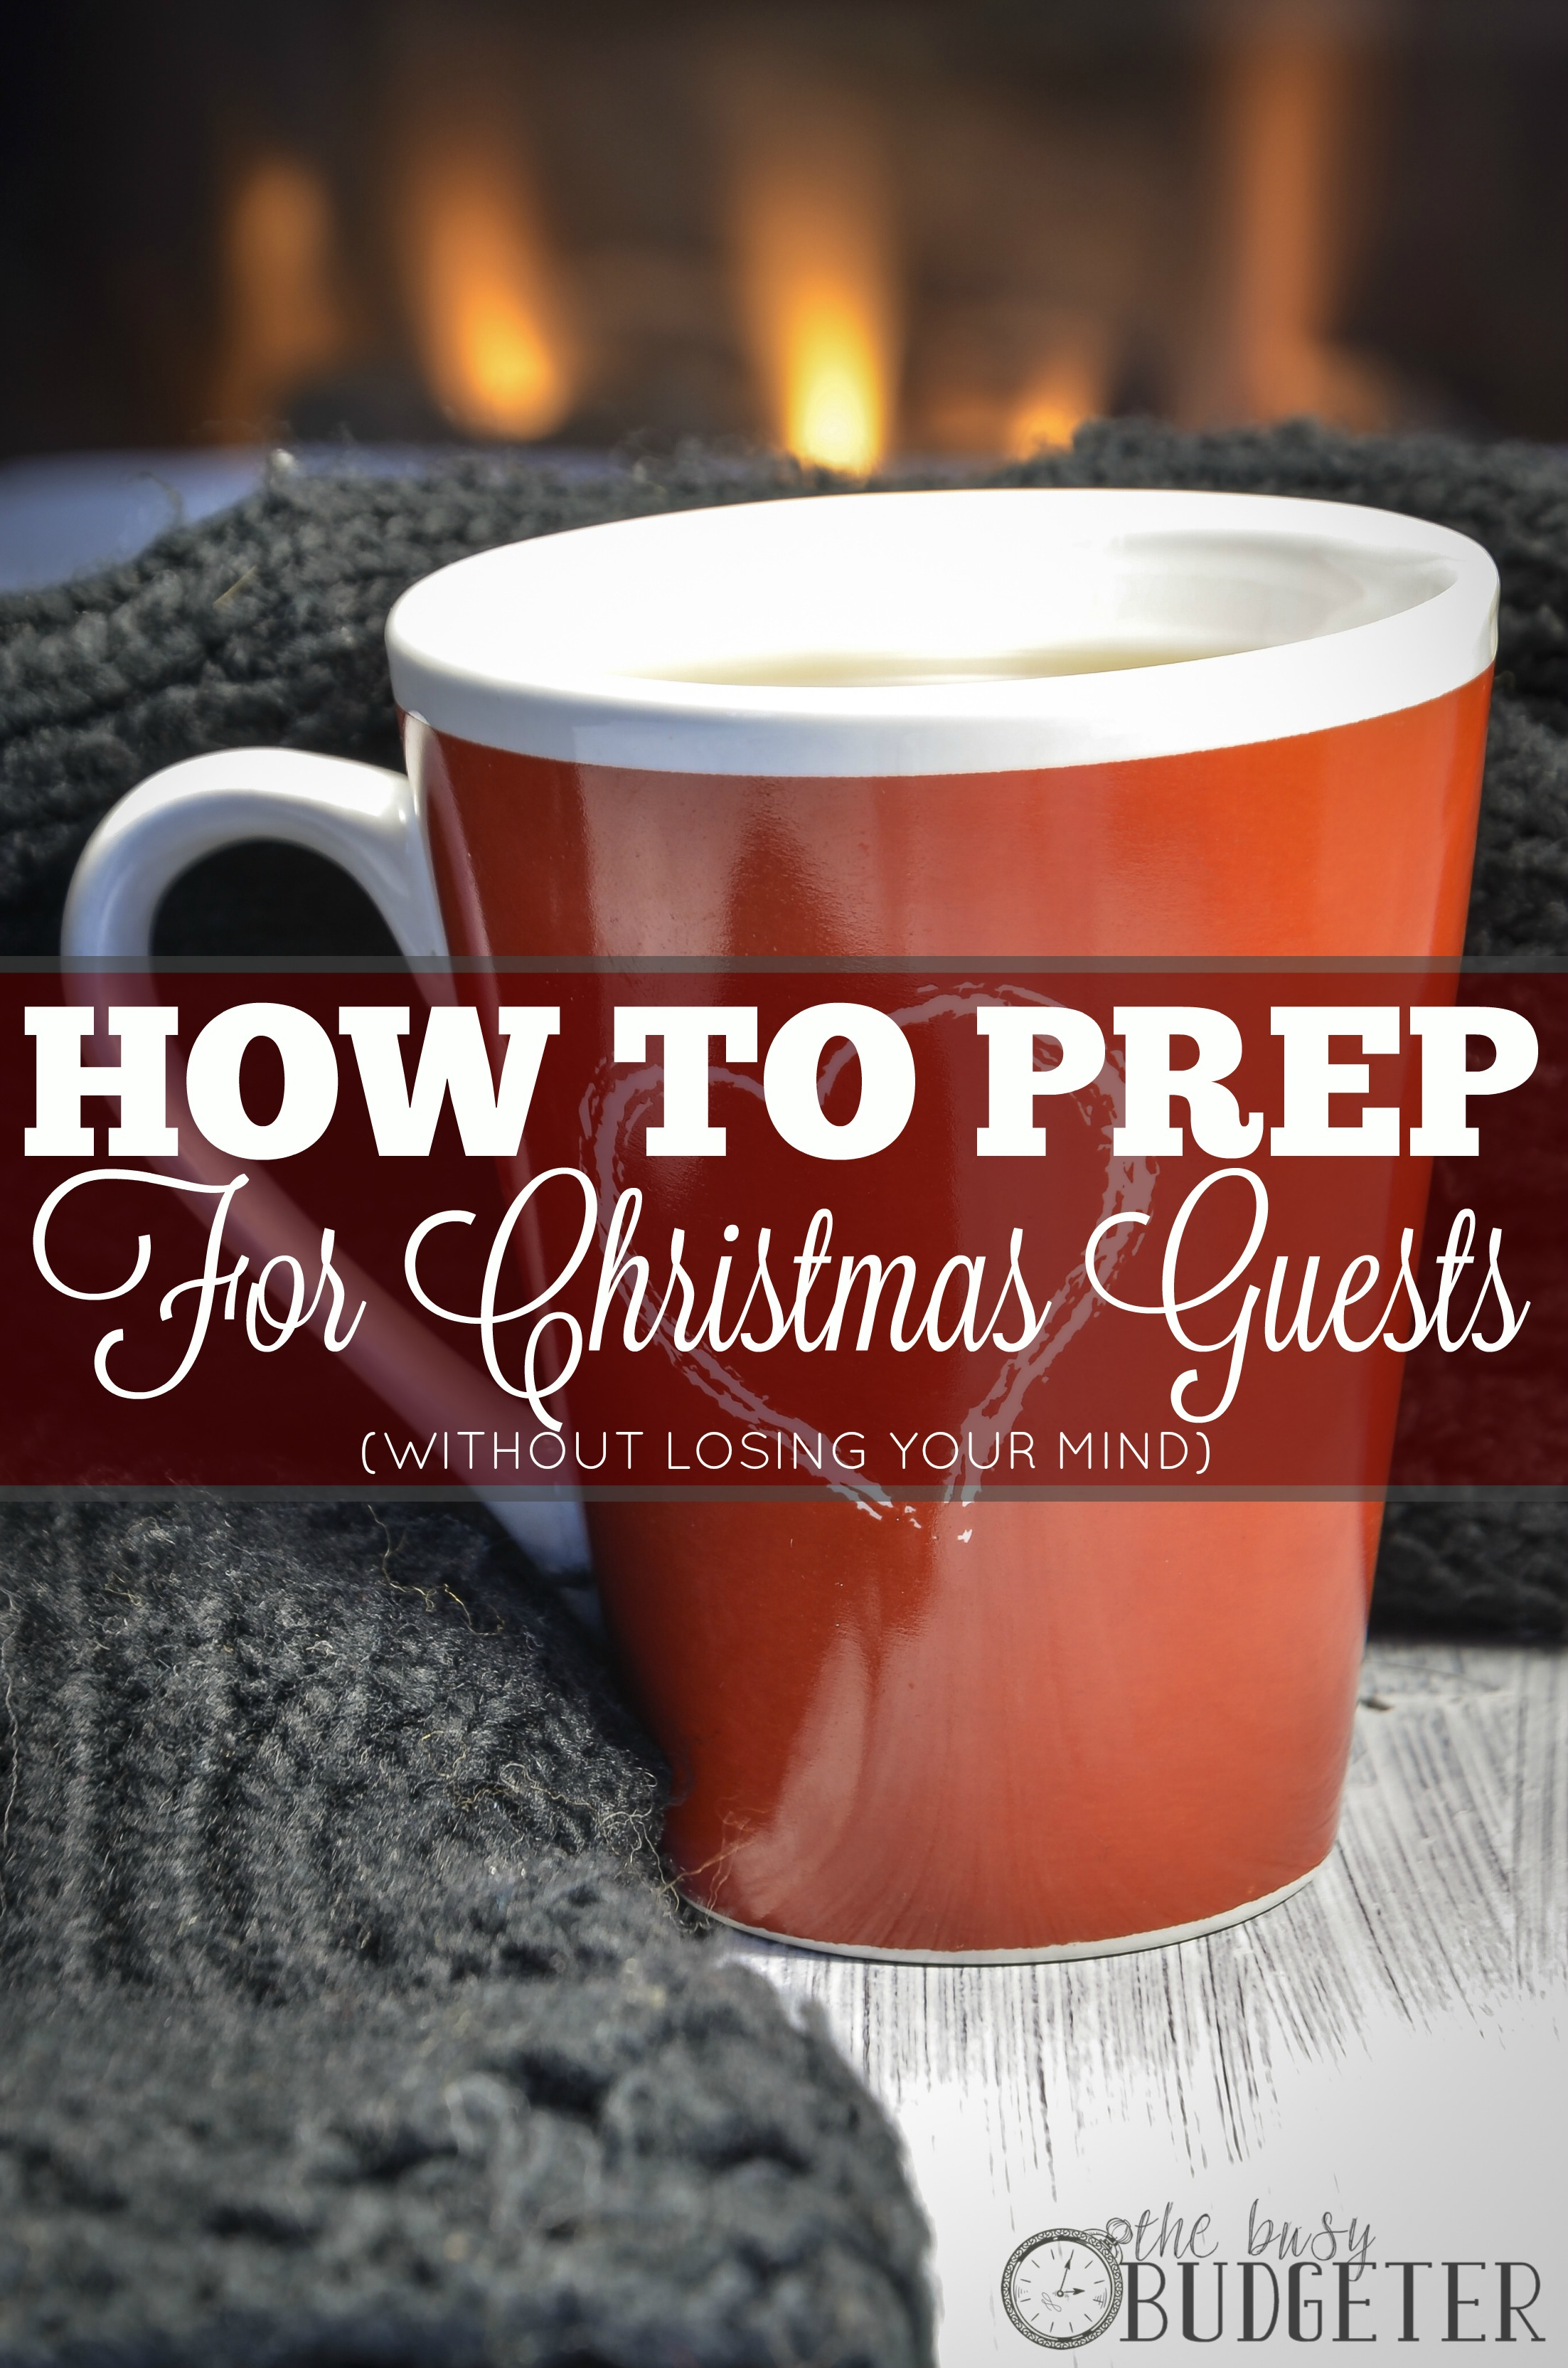 How to prep for christmas guests. I have 21 people coming in next week. This was a lifesaver! I never know what I need to have on hand before they arrive and I'm always caught off guard. This has a list of things to pick up before they get here!